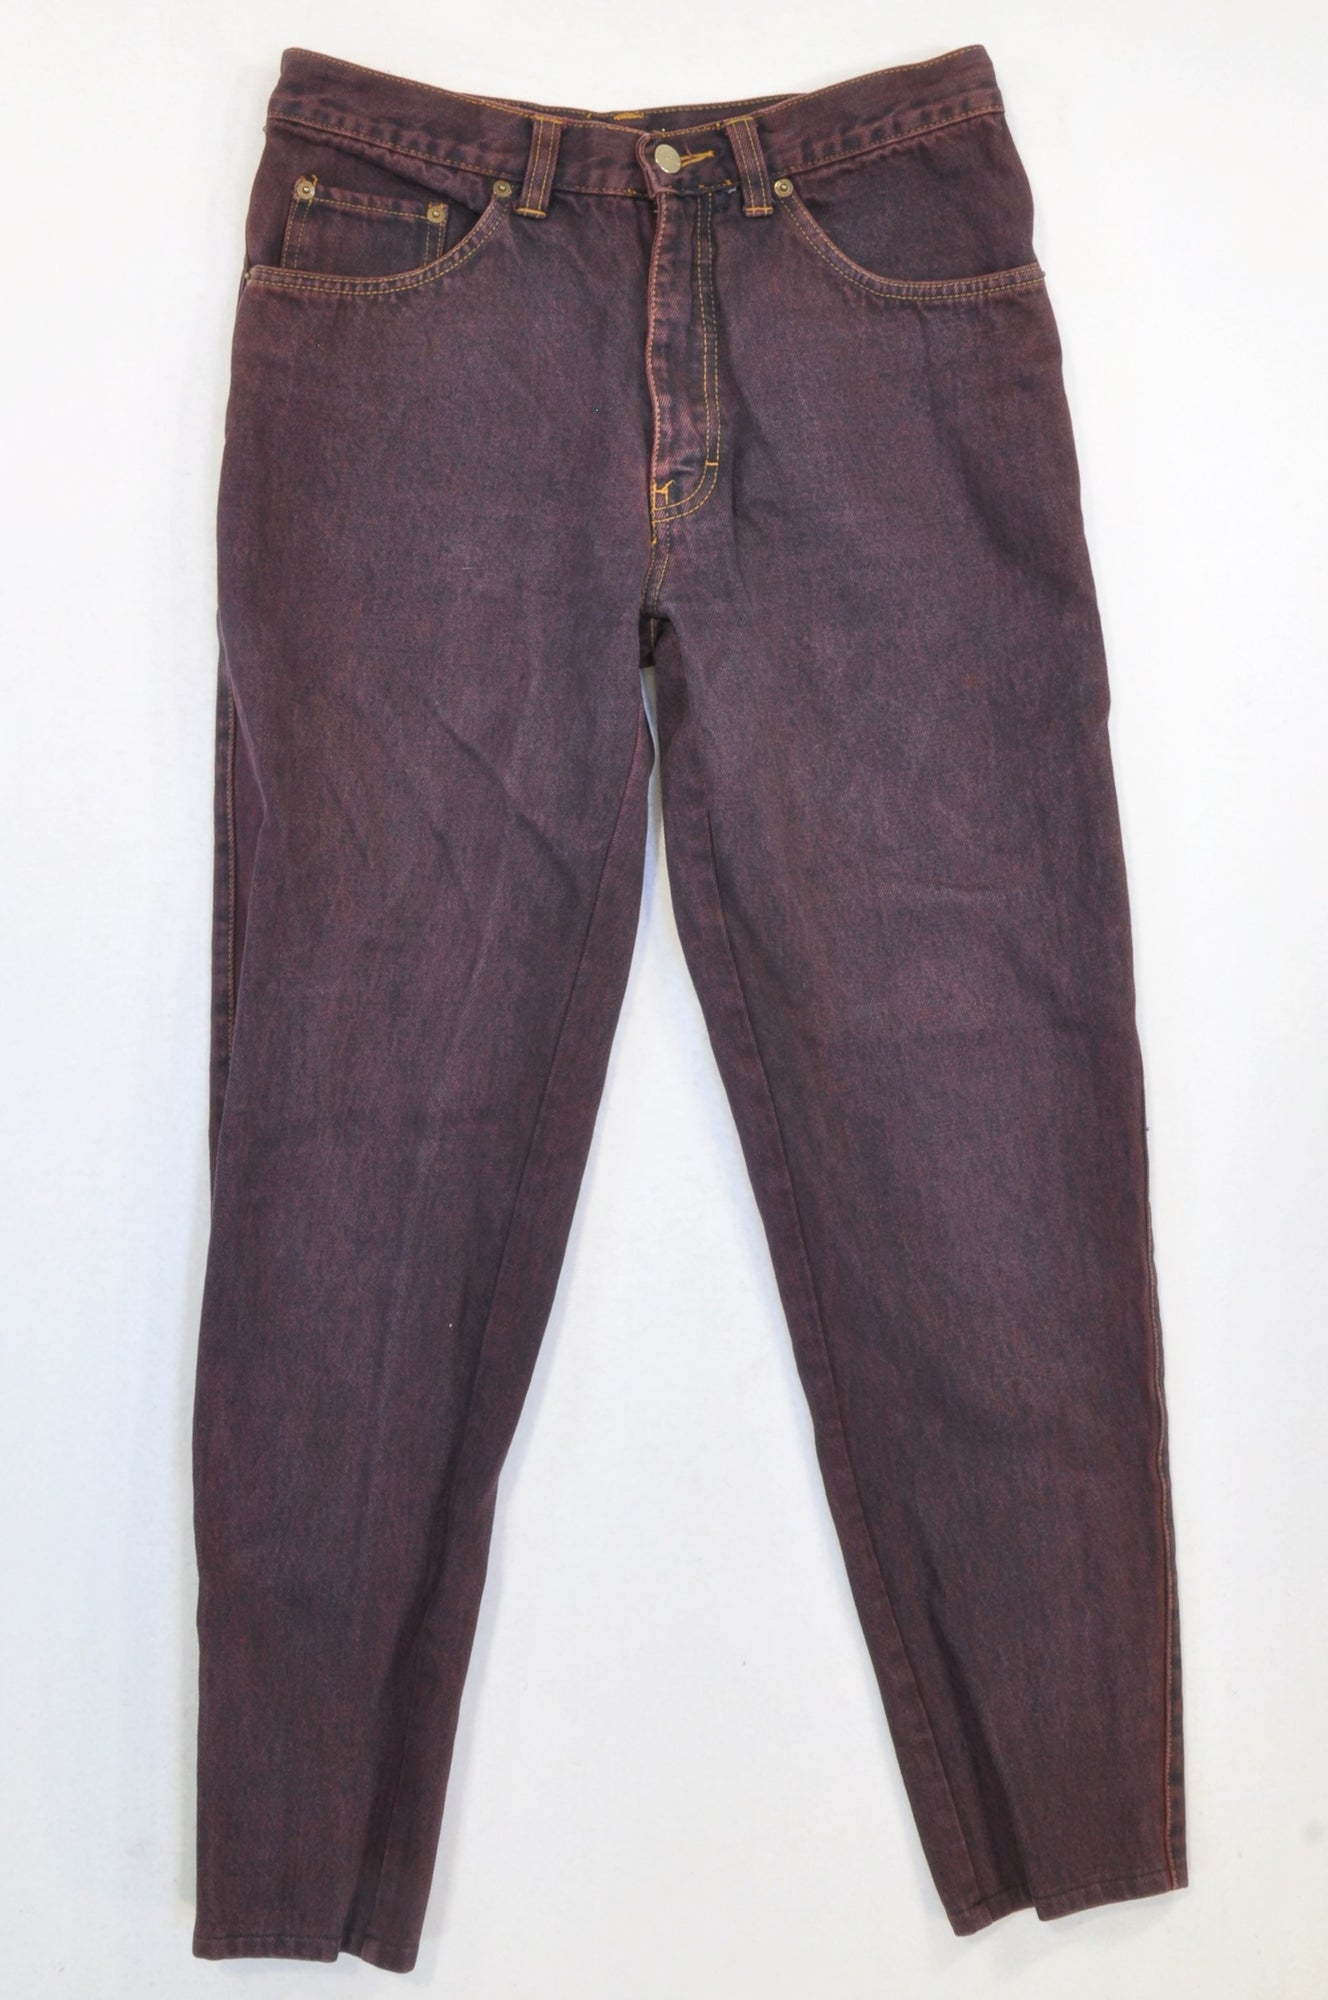 Shamo Plum Dyed Tapered Denim Jeans Women Size 8